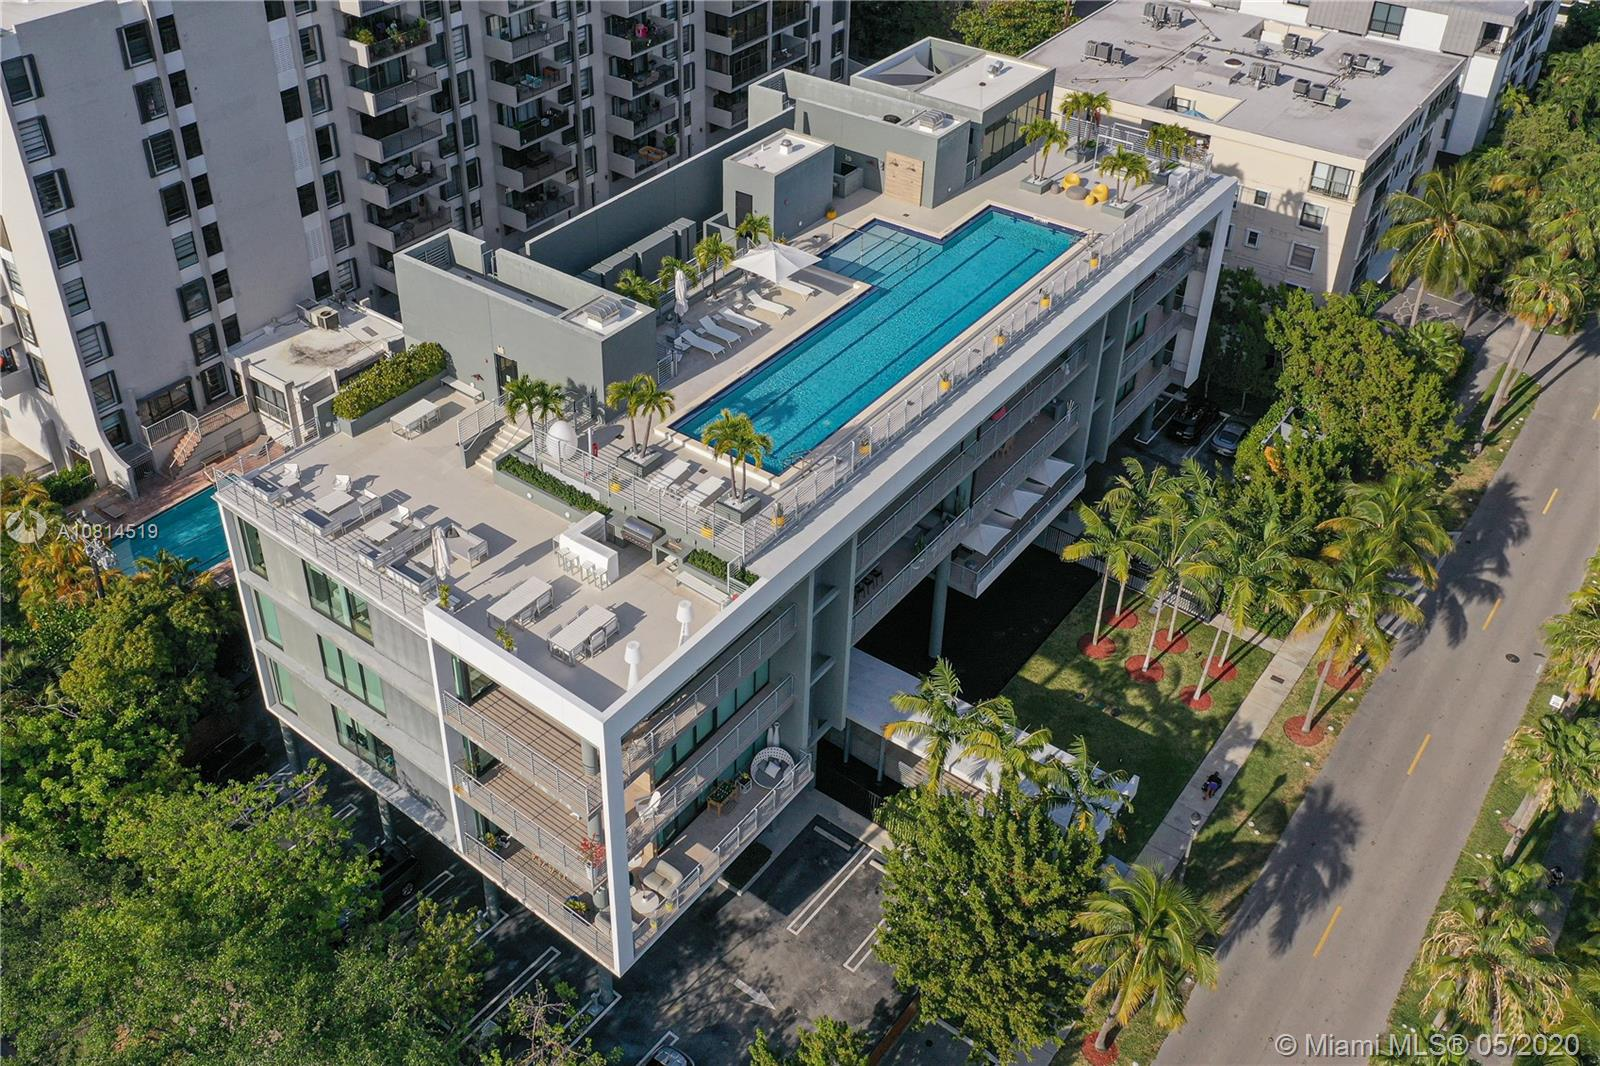 101 Sunrise Dr # A402, Key Biscayne, Florida 33149, 3 Bedrooms Bedrooms, ,4 BathroomsBathrooms,Residential,For Sale,101 Sunrise Dr # A402,A10814519